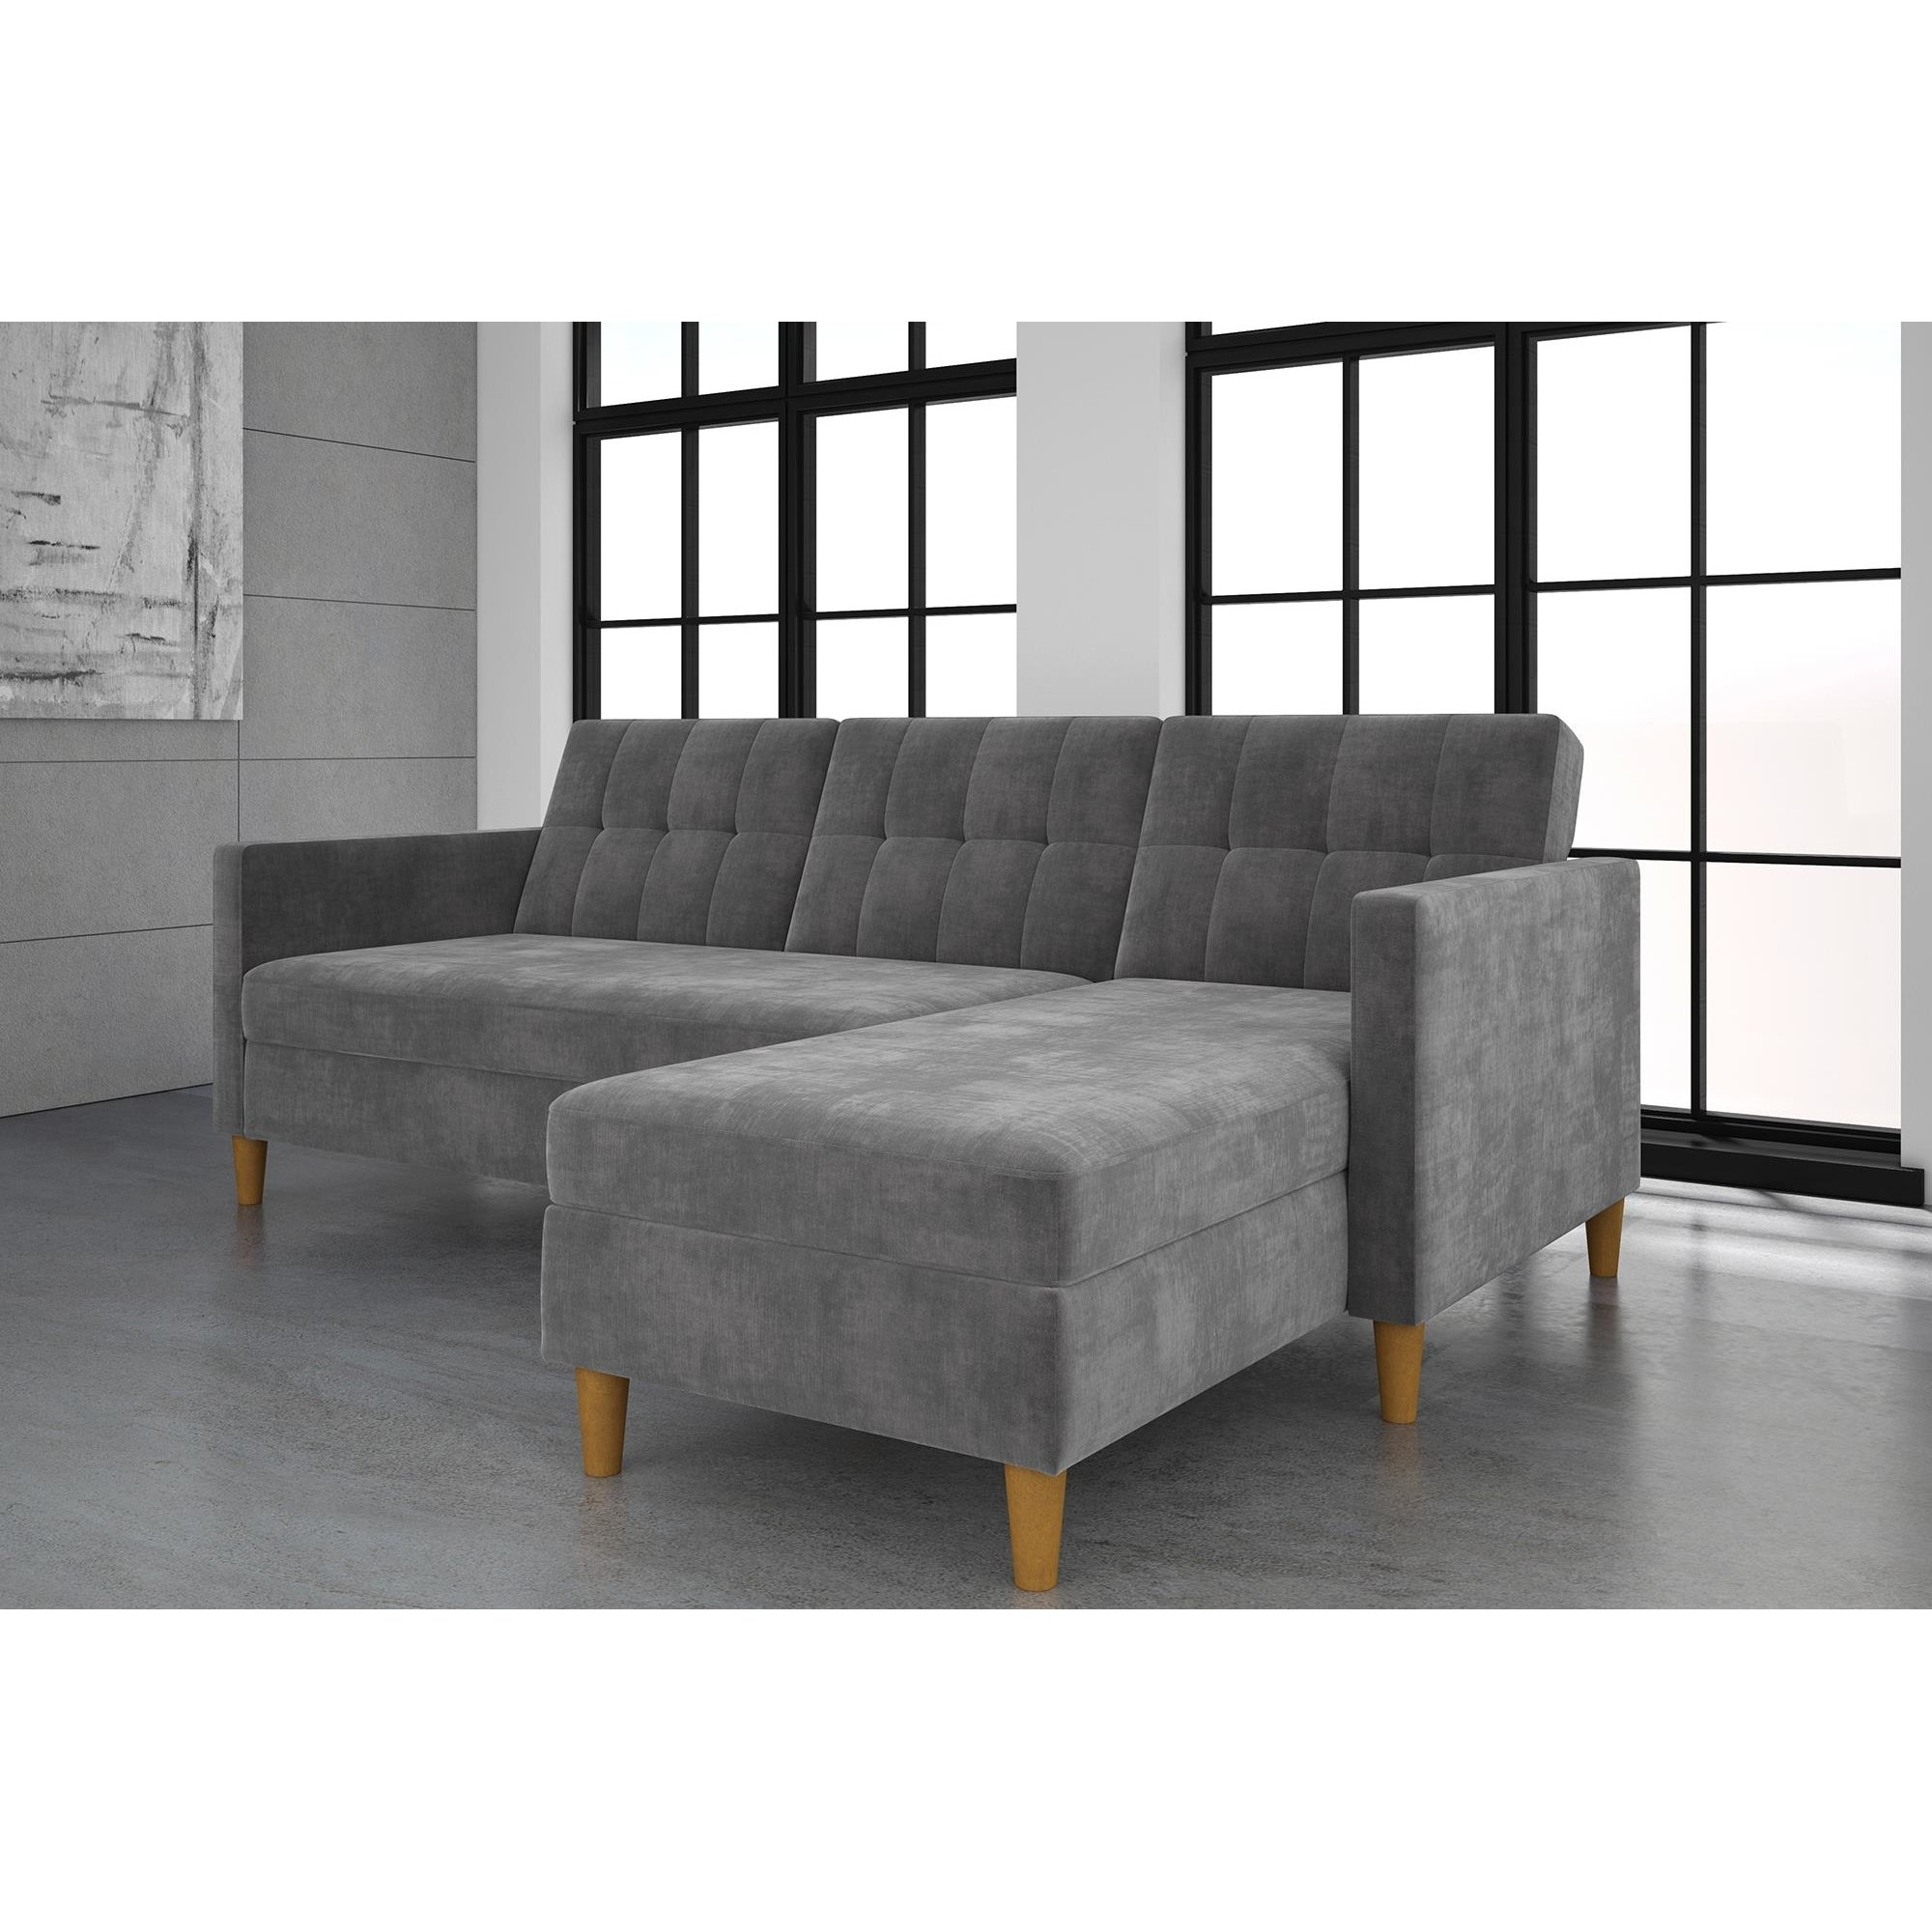 Fashionable Stigall Futon Storage Reversible Sleeper Sectional (View 15 of 15)